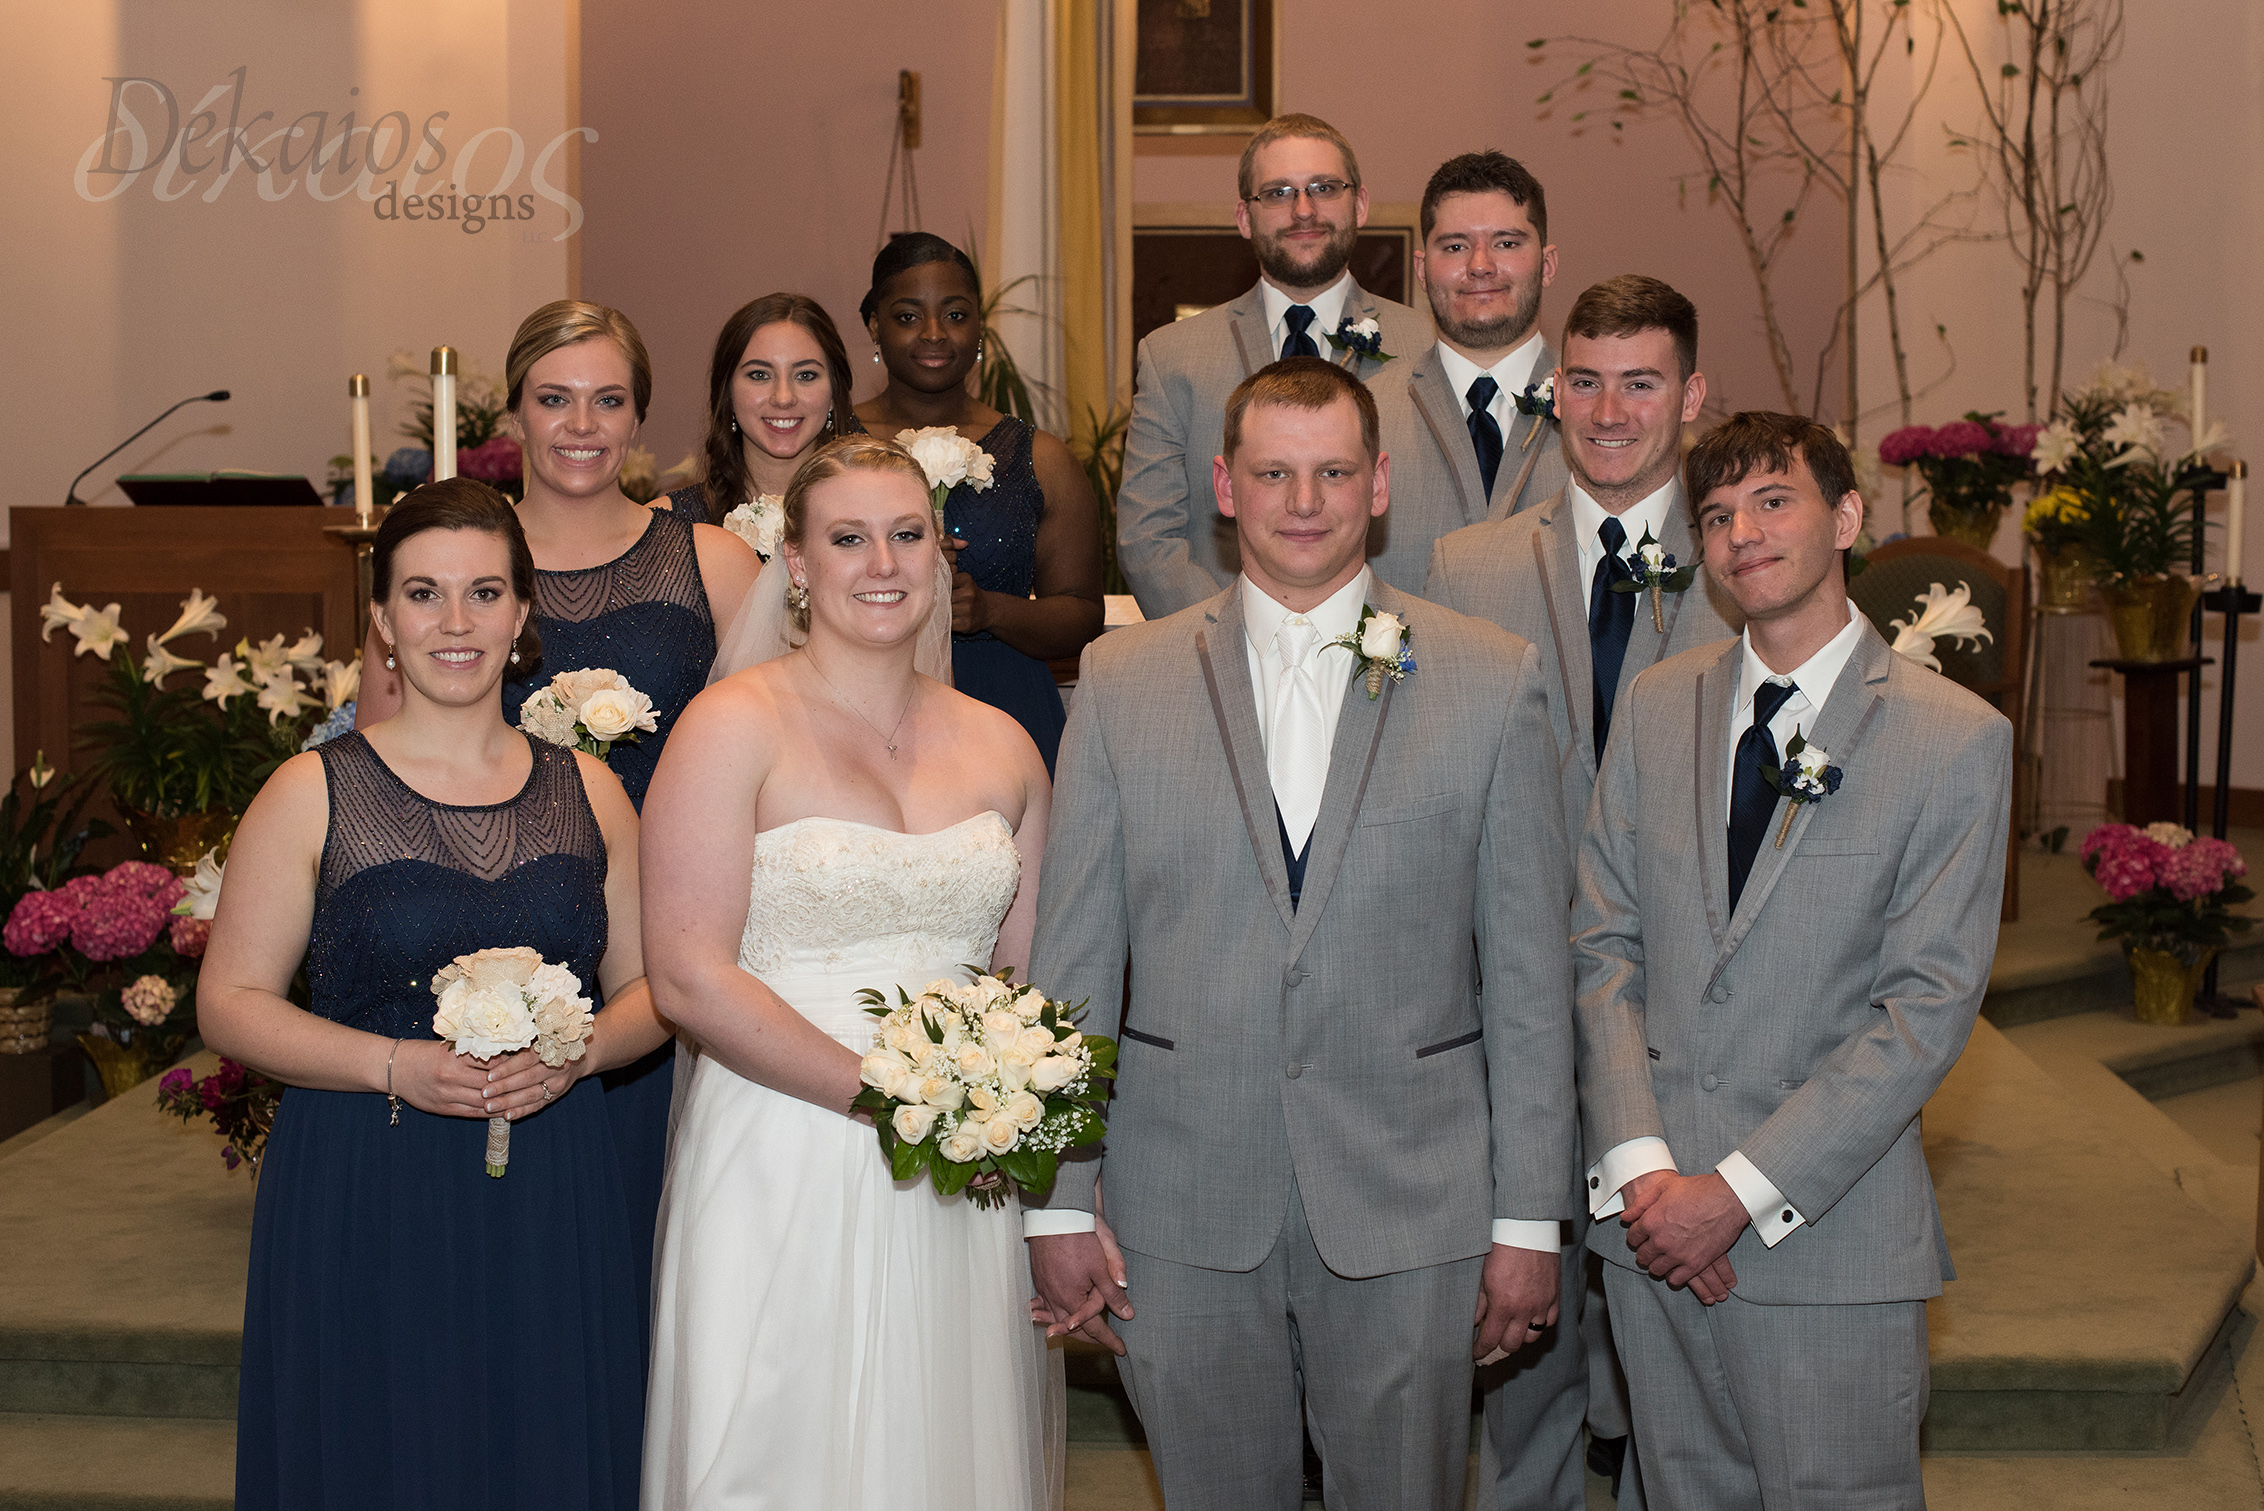 The wedding party at the Church.